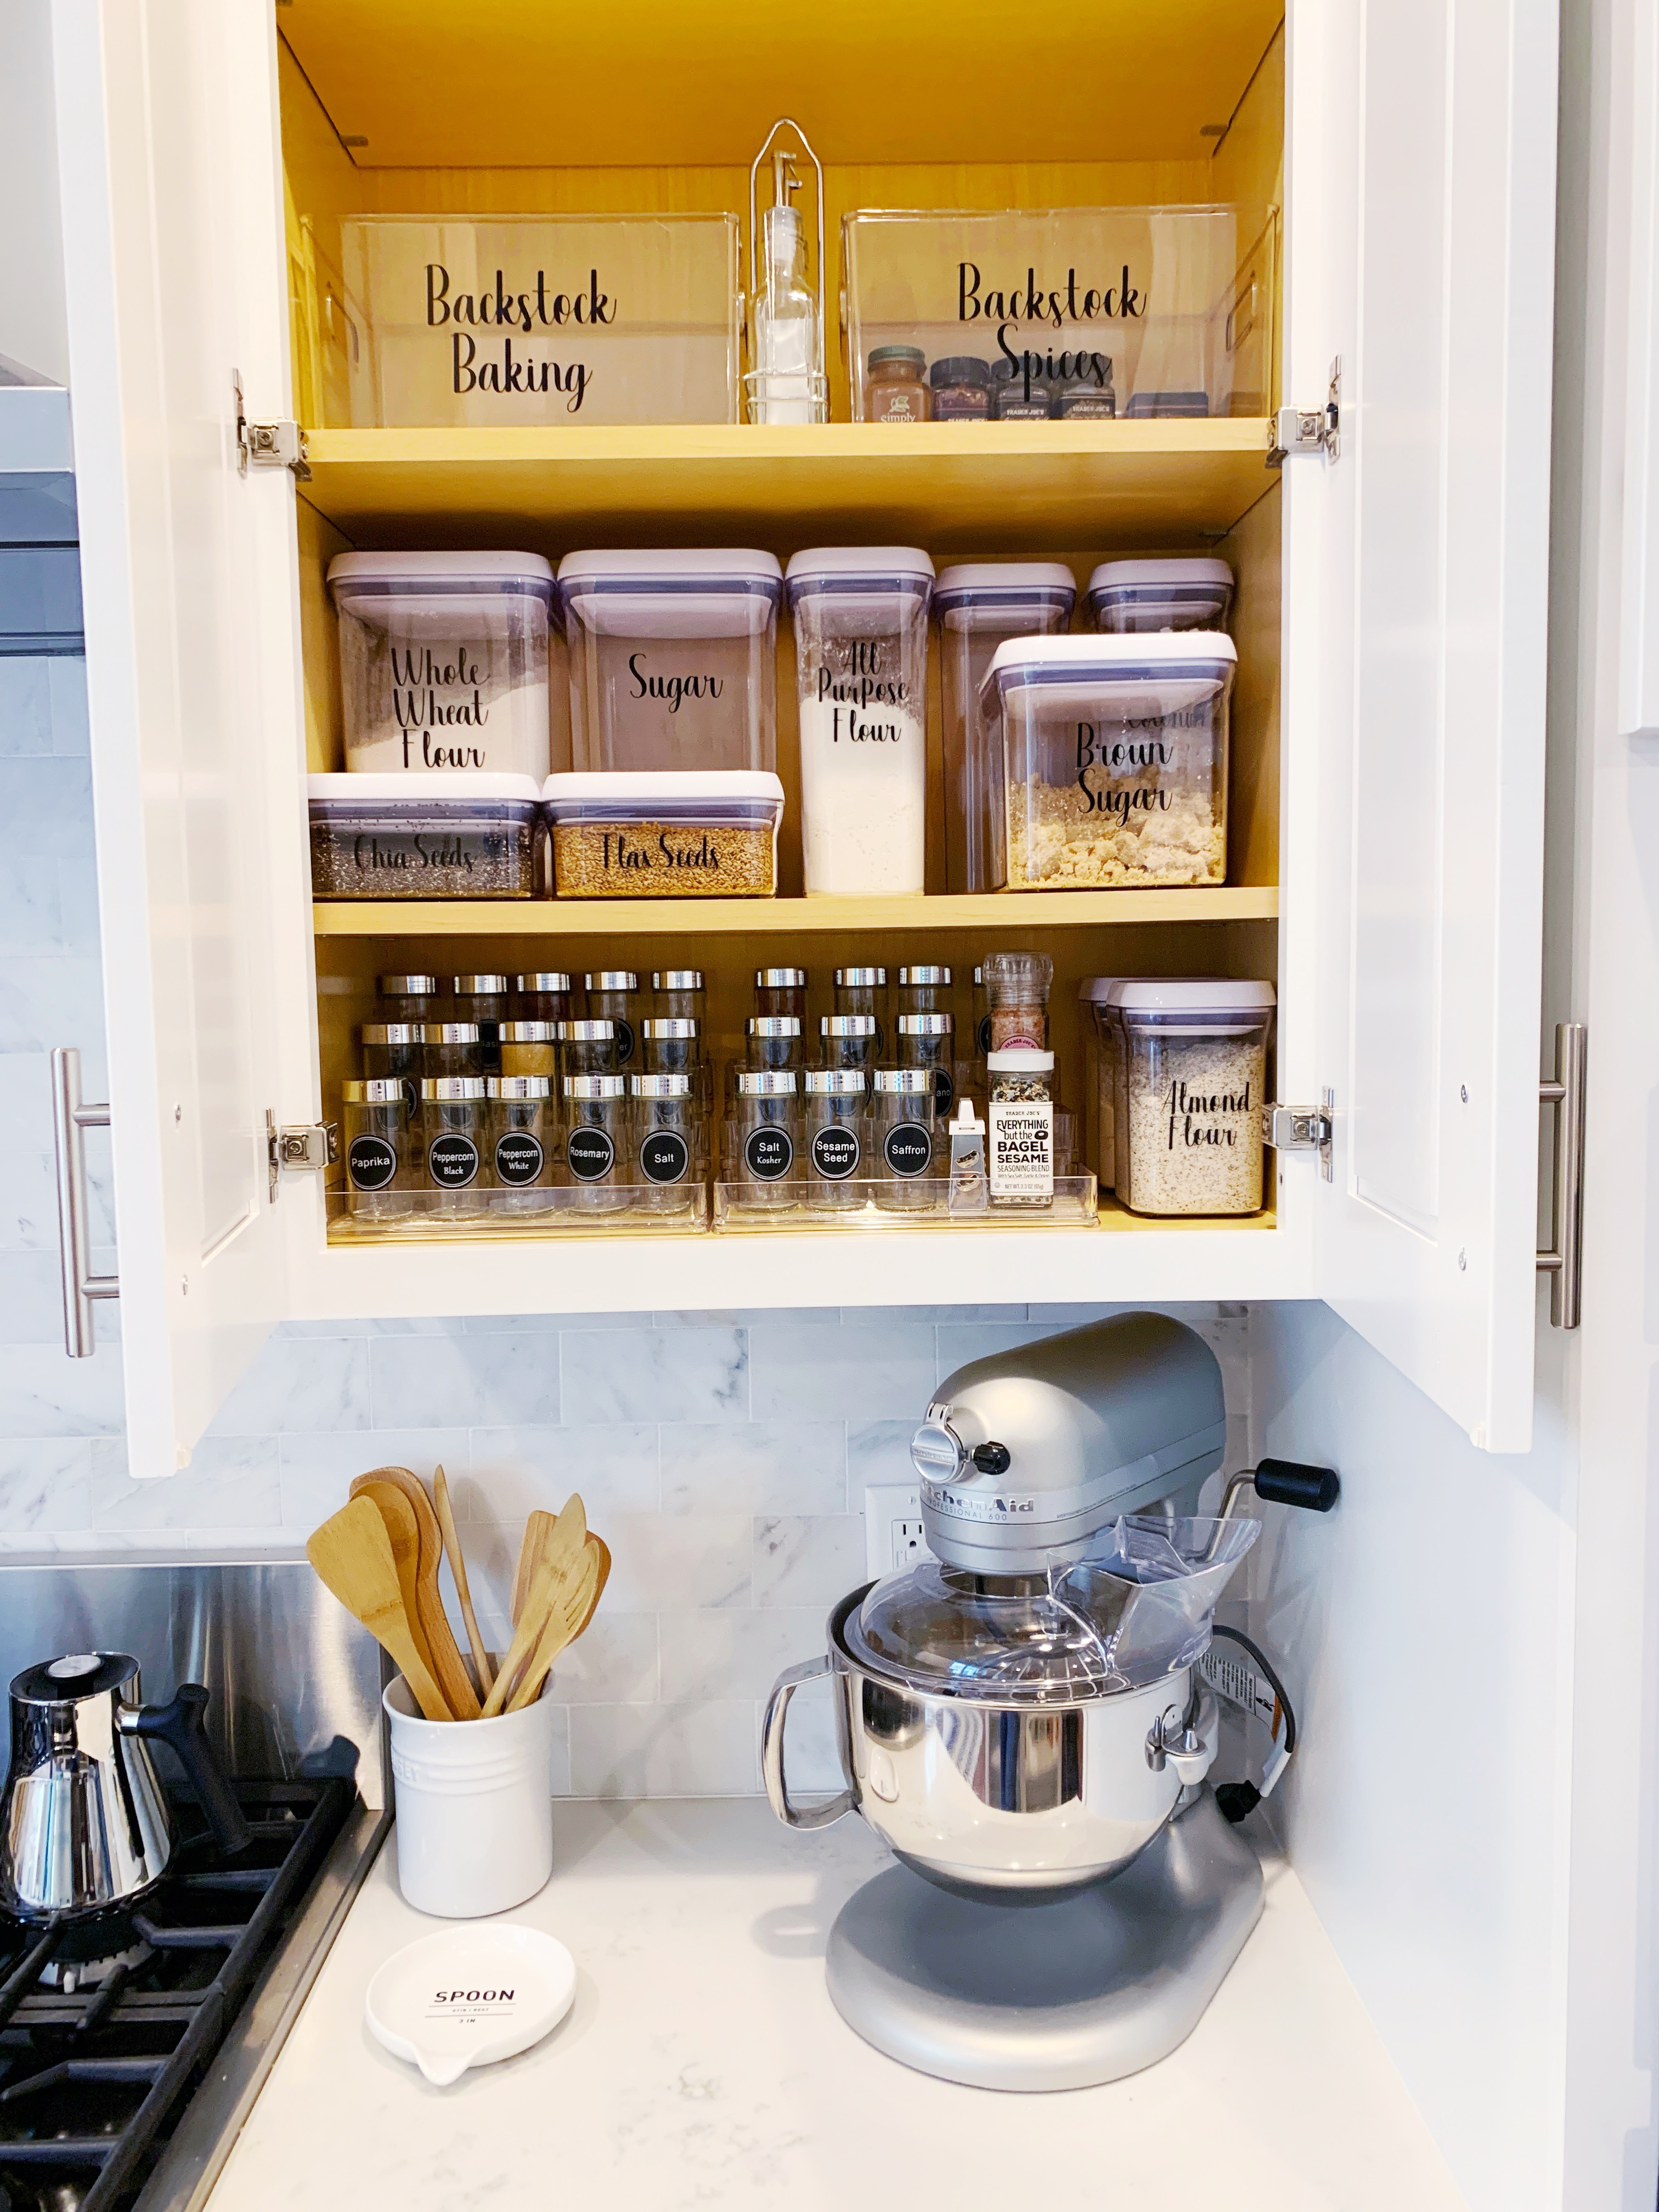 Kitchen cabinet organized with coordinating bins and containers.